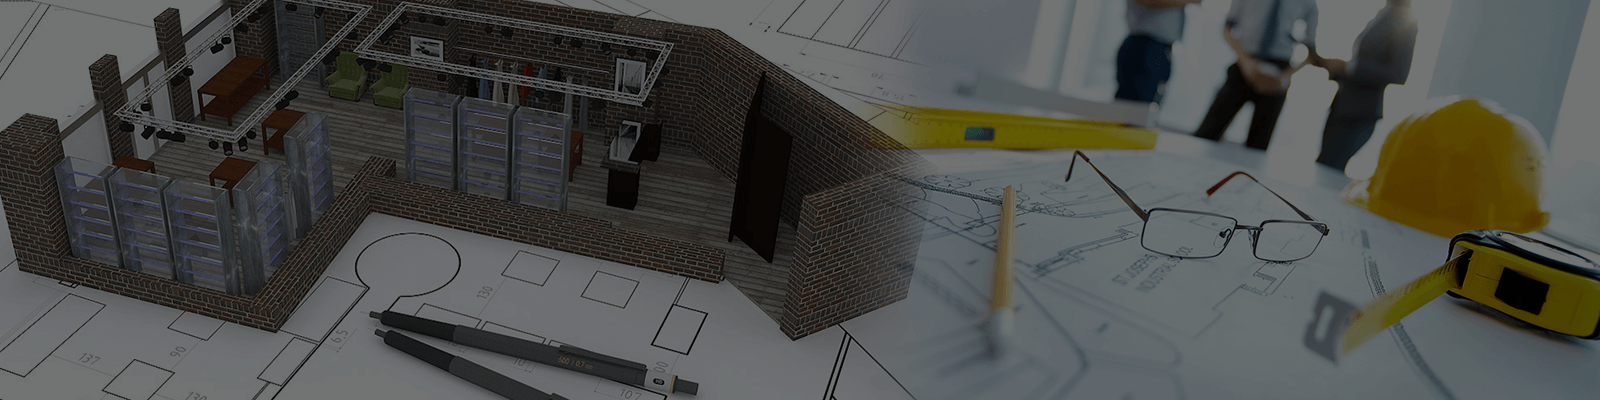 MEP Shop drawing services USA